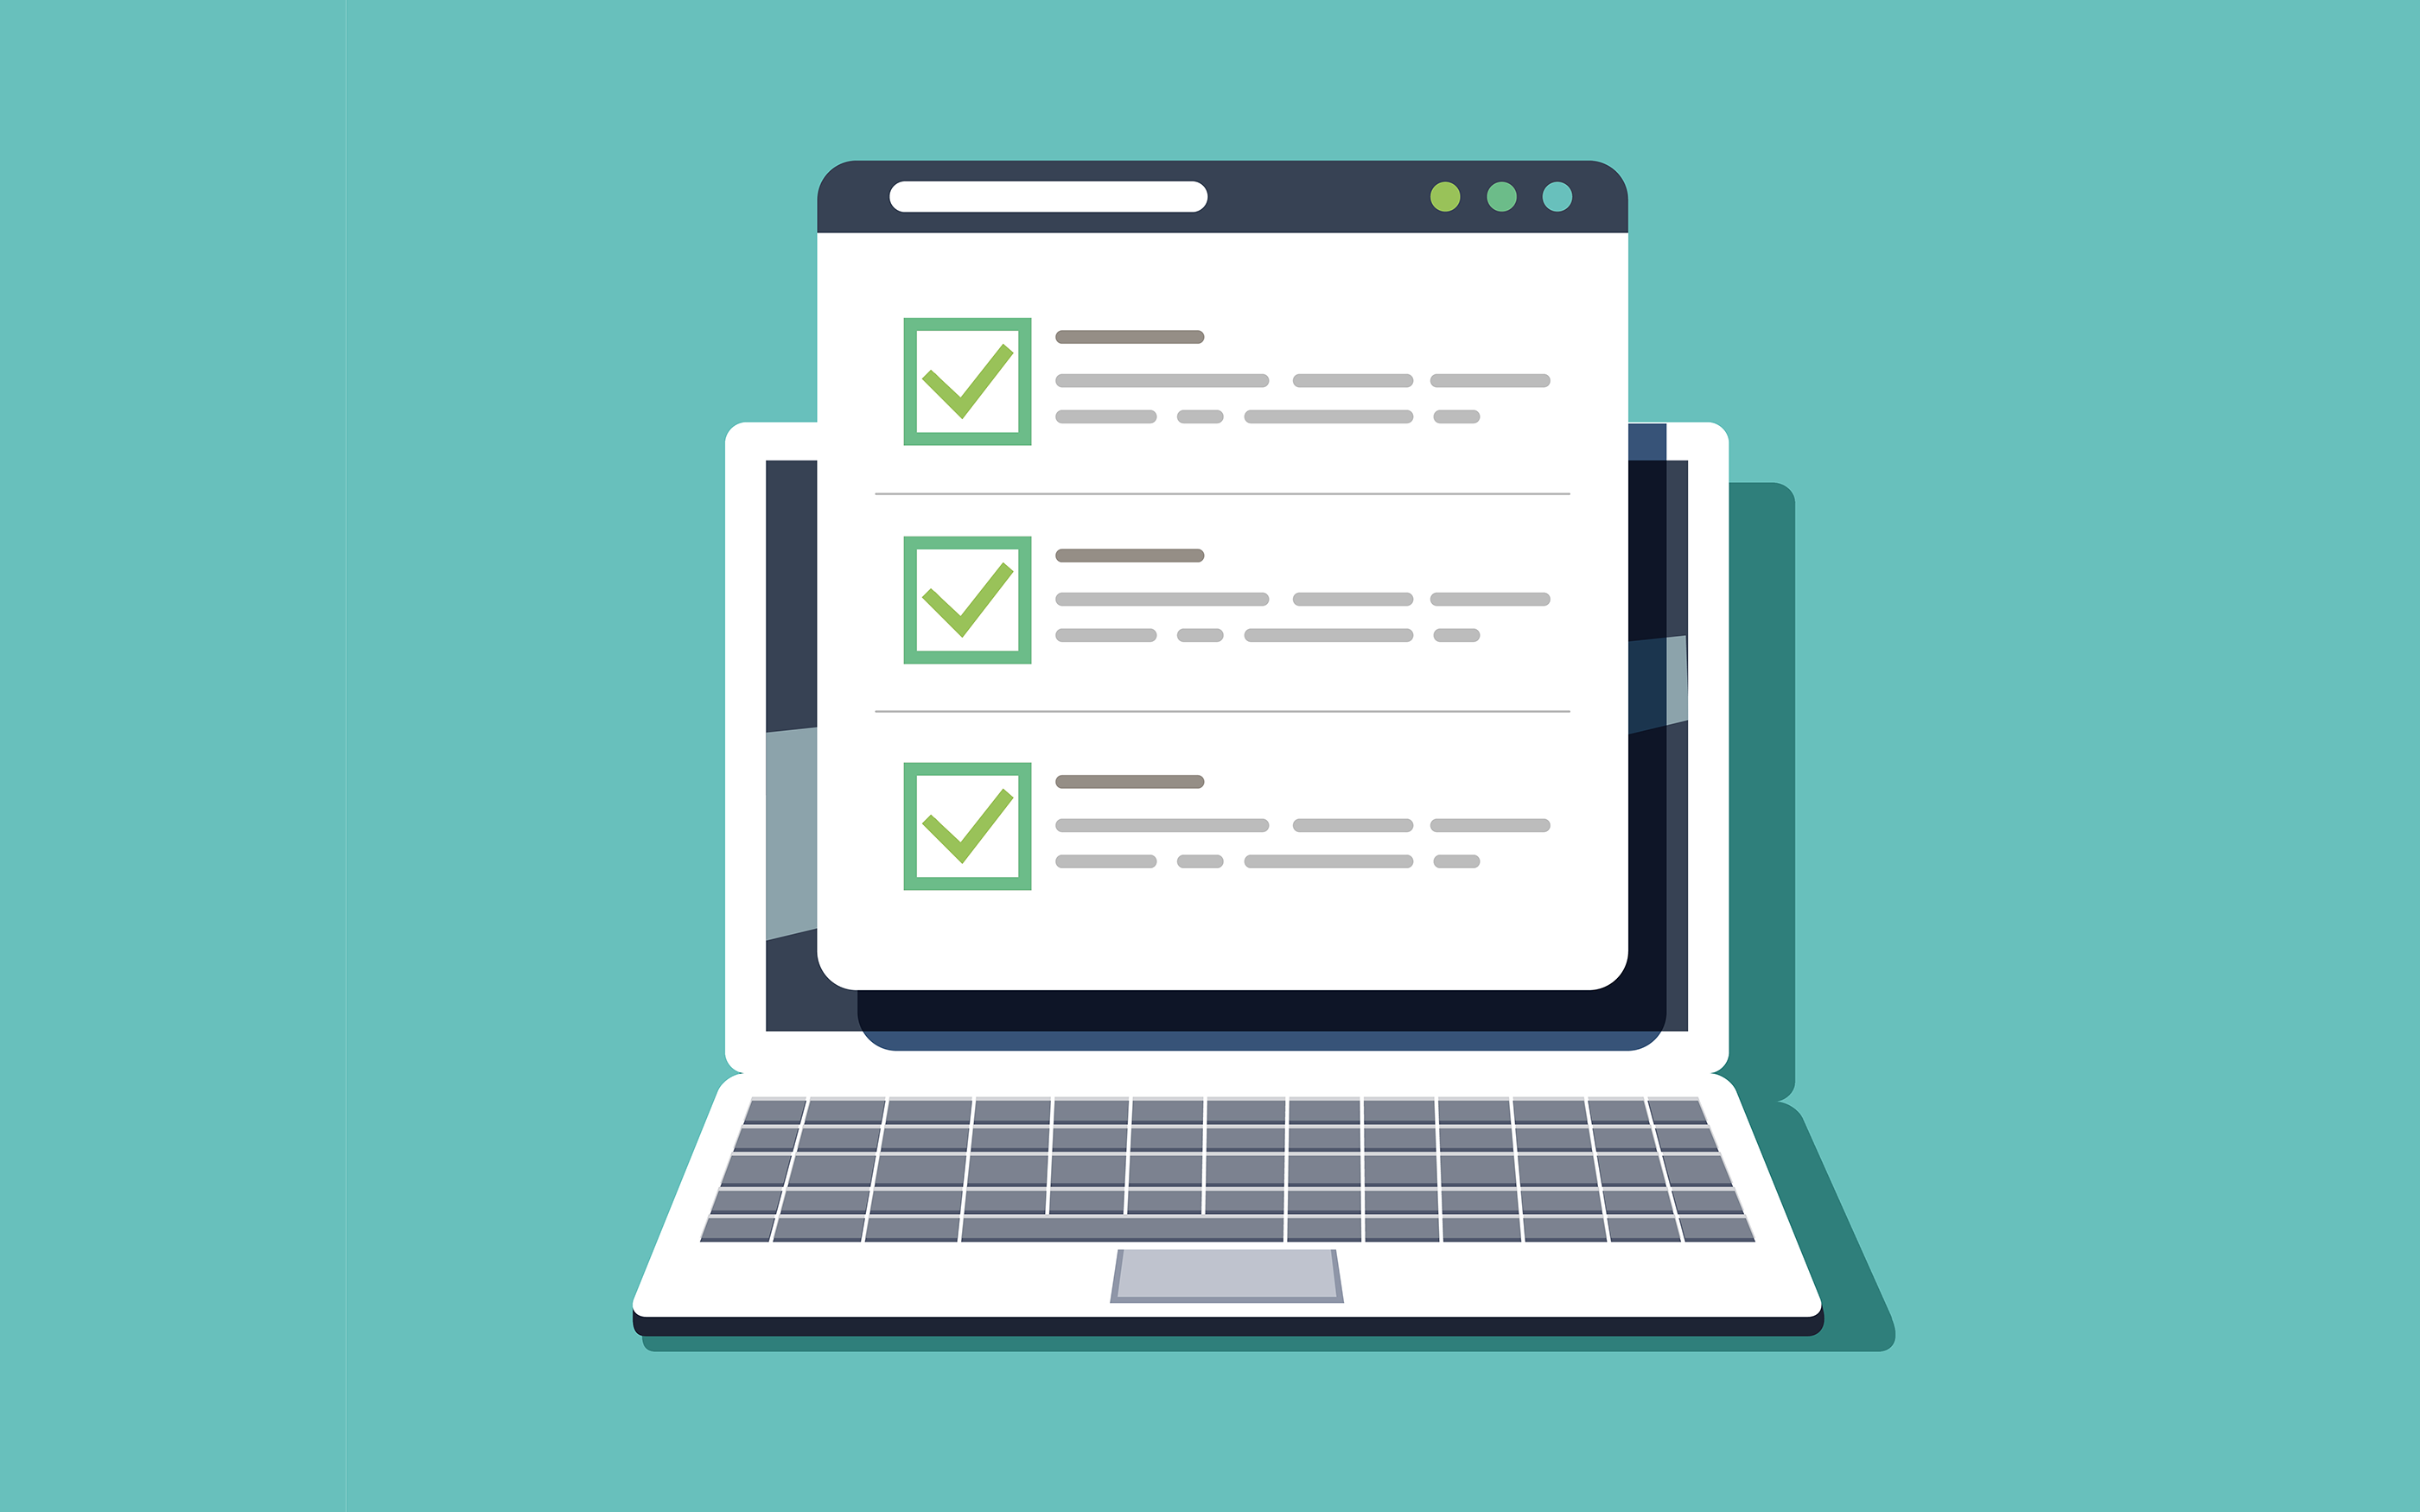 20 Questions to Decide if Your Website is Ready for 2021